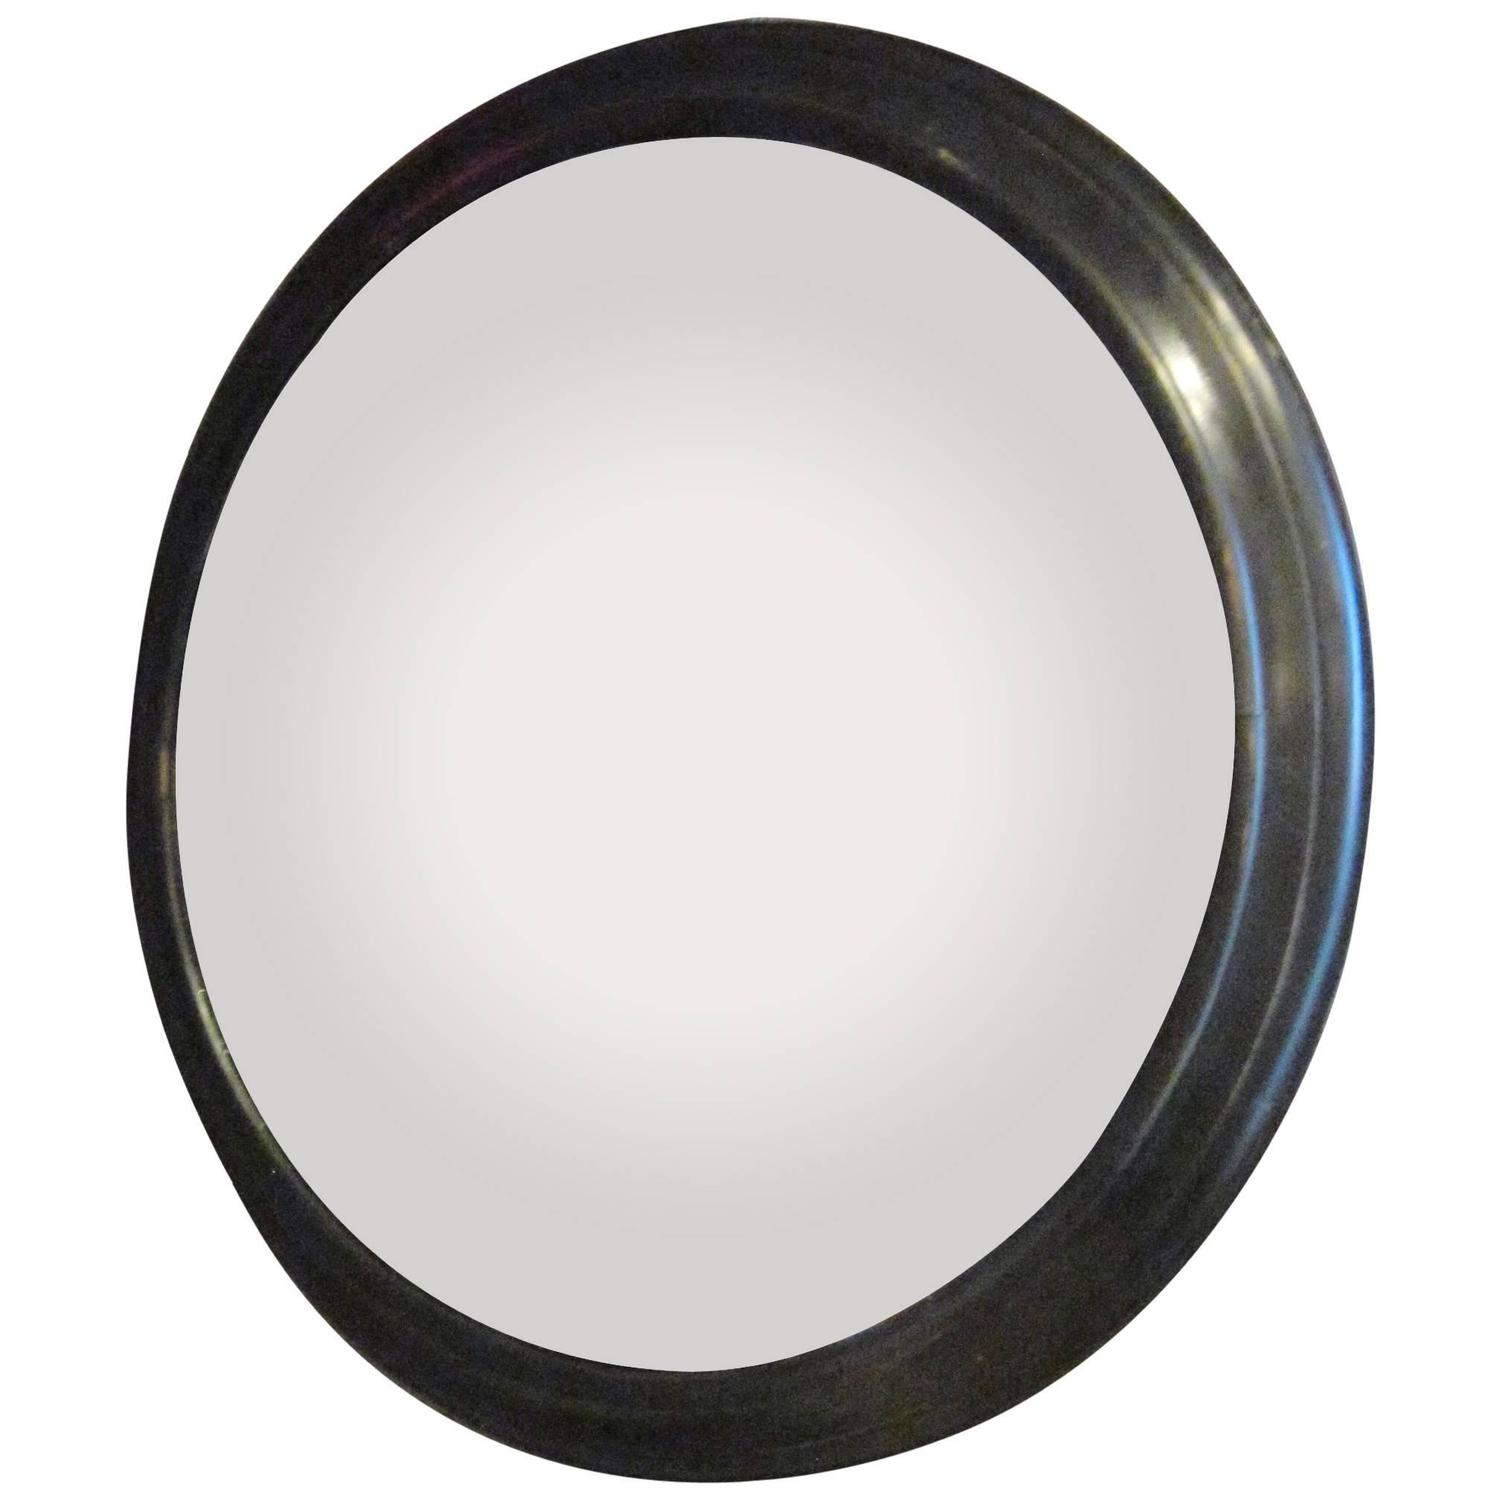 French napoleon iii extra large round convex mirror in for Extra large mirrors